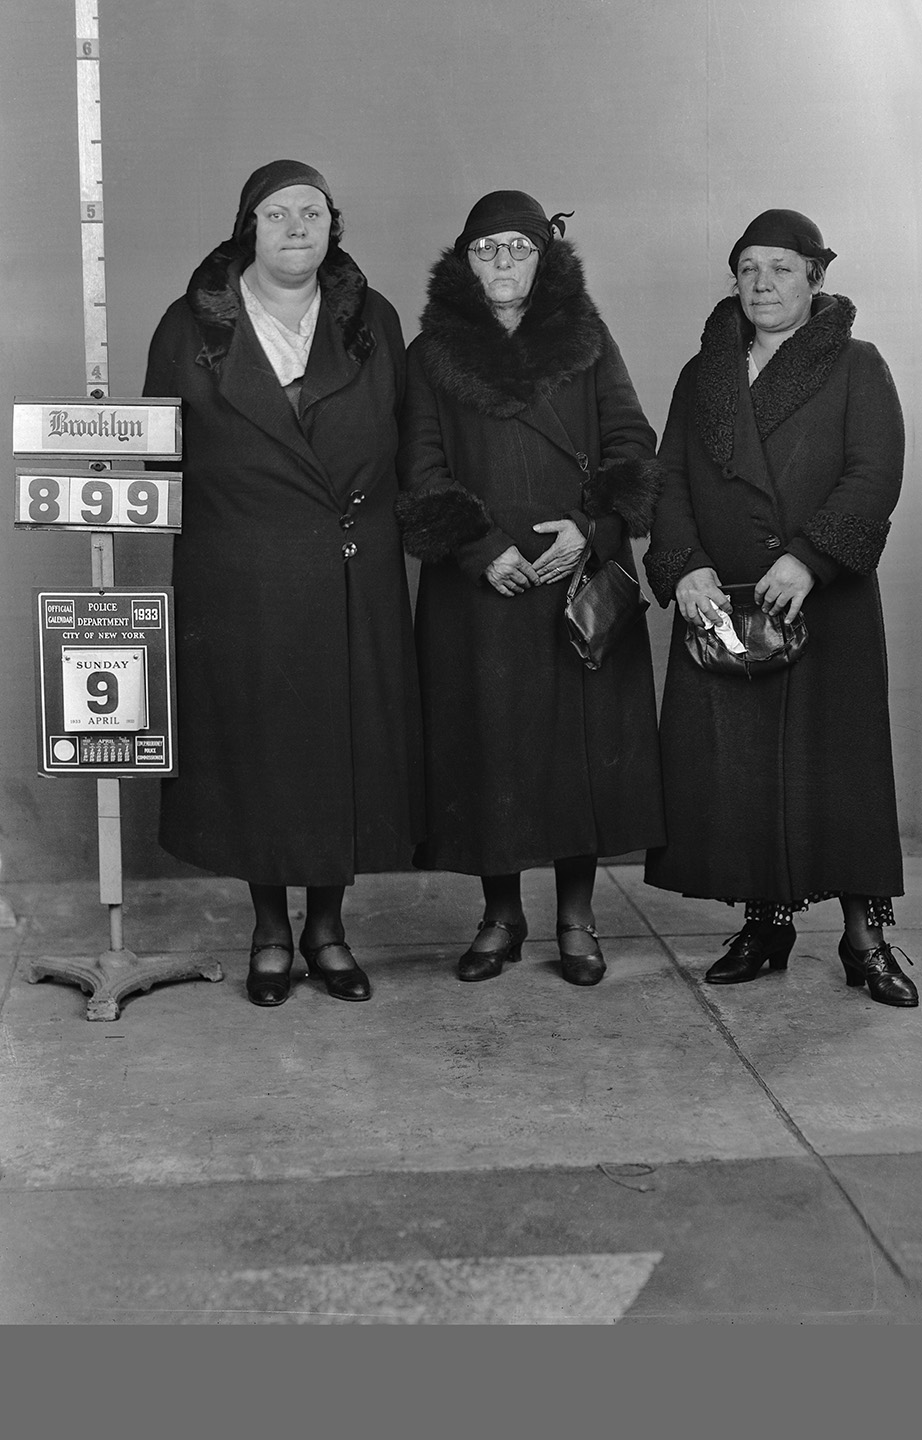 BKSU 899  Margie Goldberg, Sarah Klein, Anna Miller, April 9, 1933  Grand Larceny (shoplifting)  Det. Wright, 73 sq.